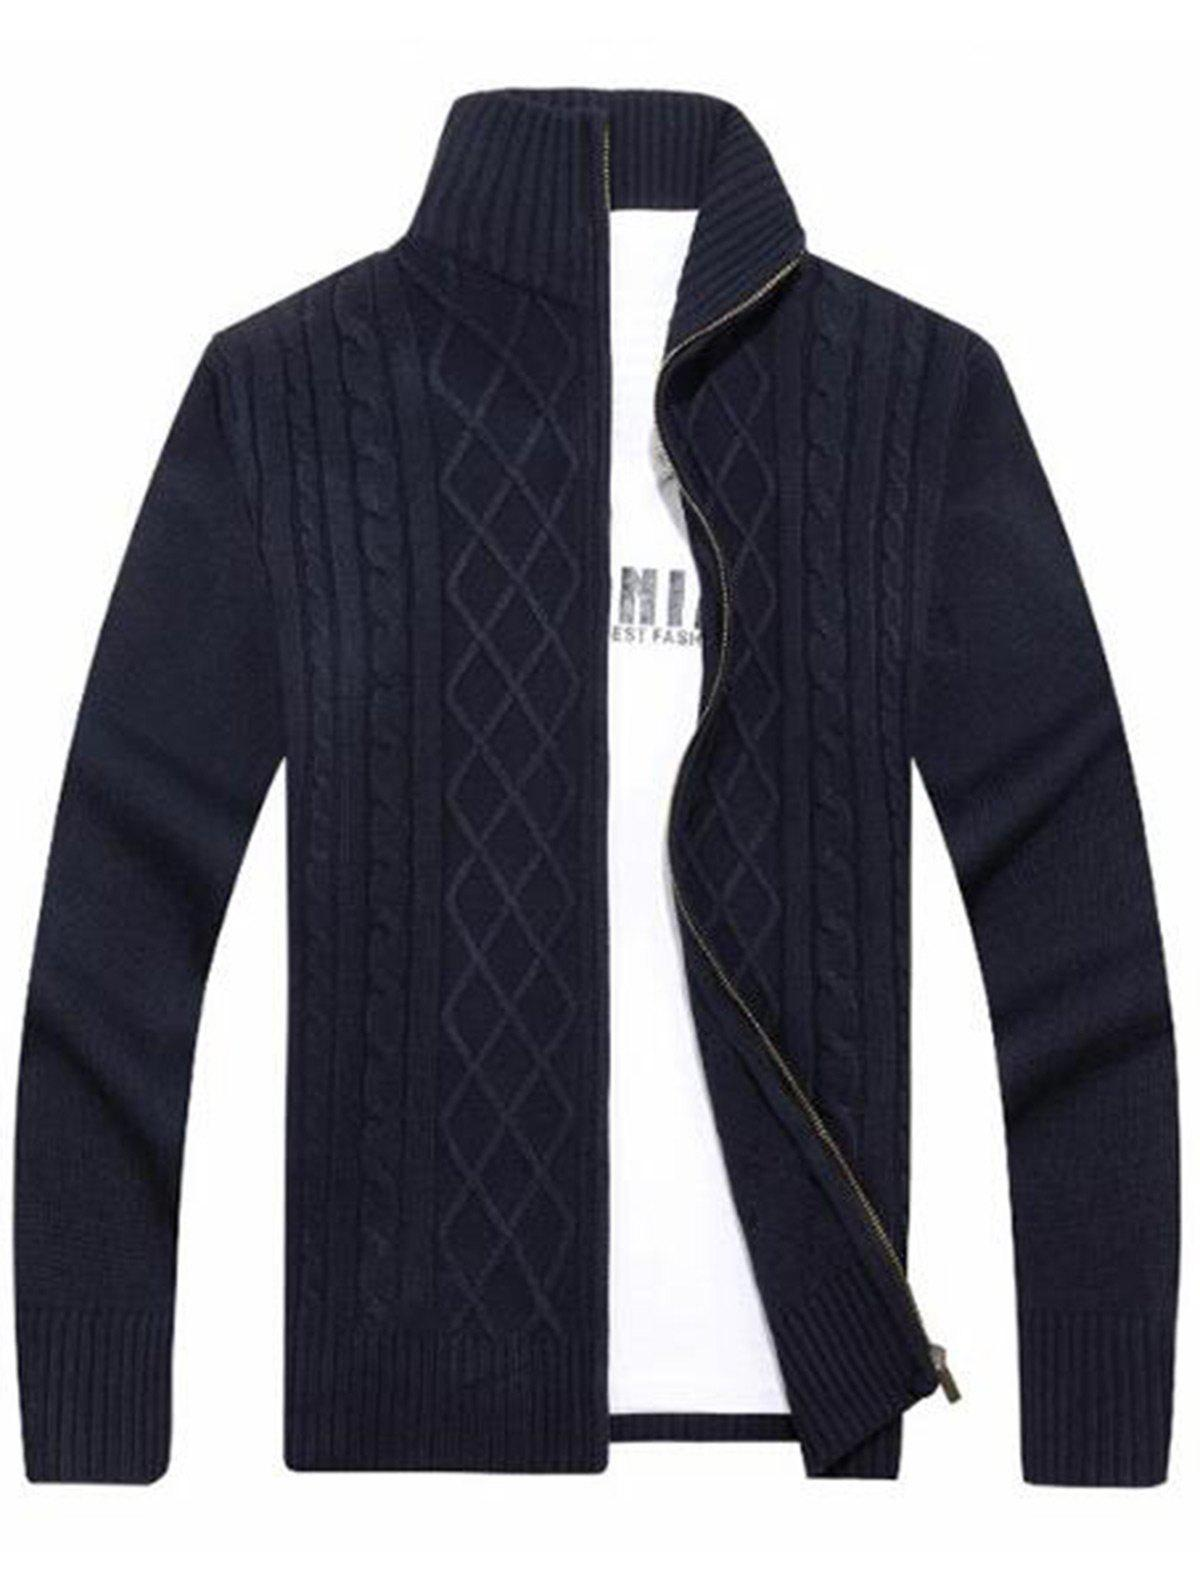 Buy High Neck Cable Knit Sweater Cardigan